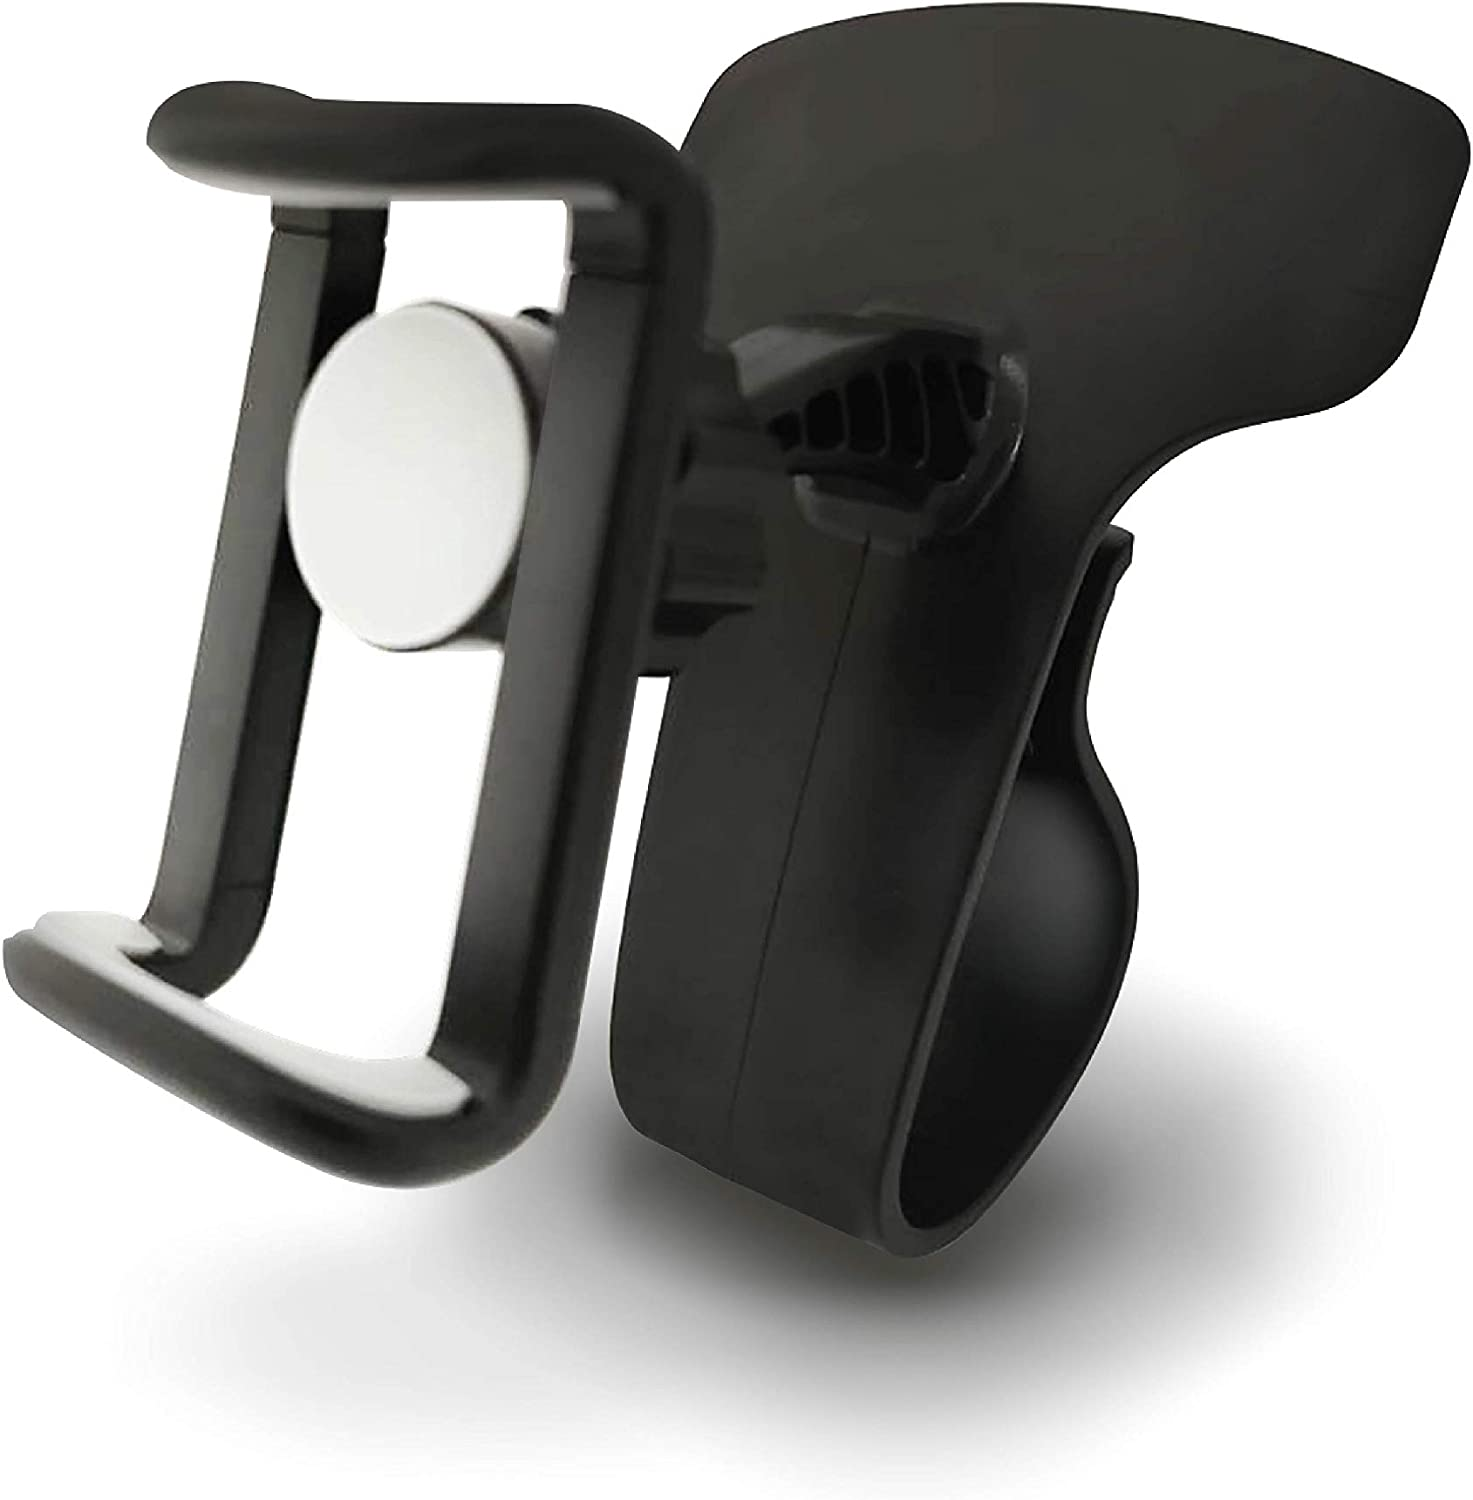 UTC Global Car Phone Holder 360-Degree Rotation Cell Phone Holder Suitable for 4 to 6.5 inch Smartphones,Rotating Dashboard Clip Mount Stand